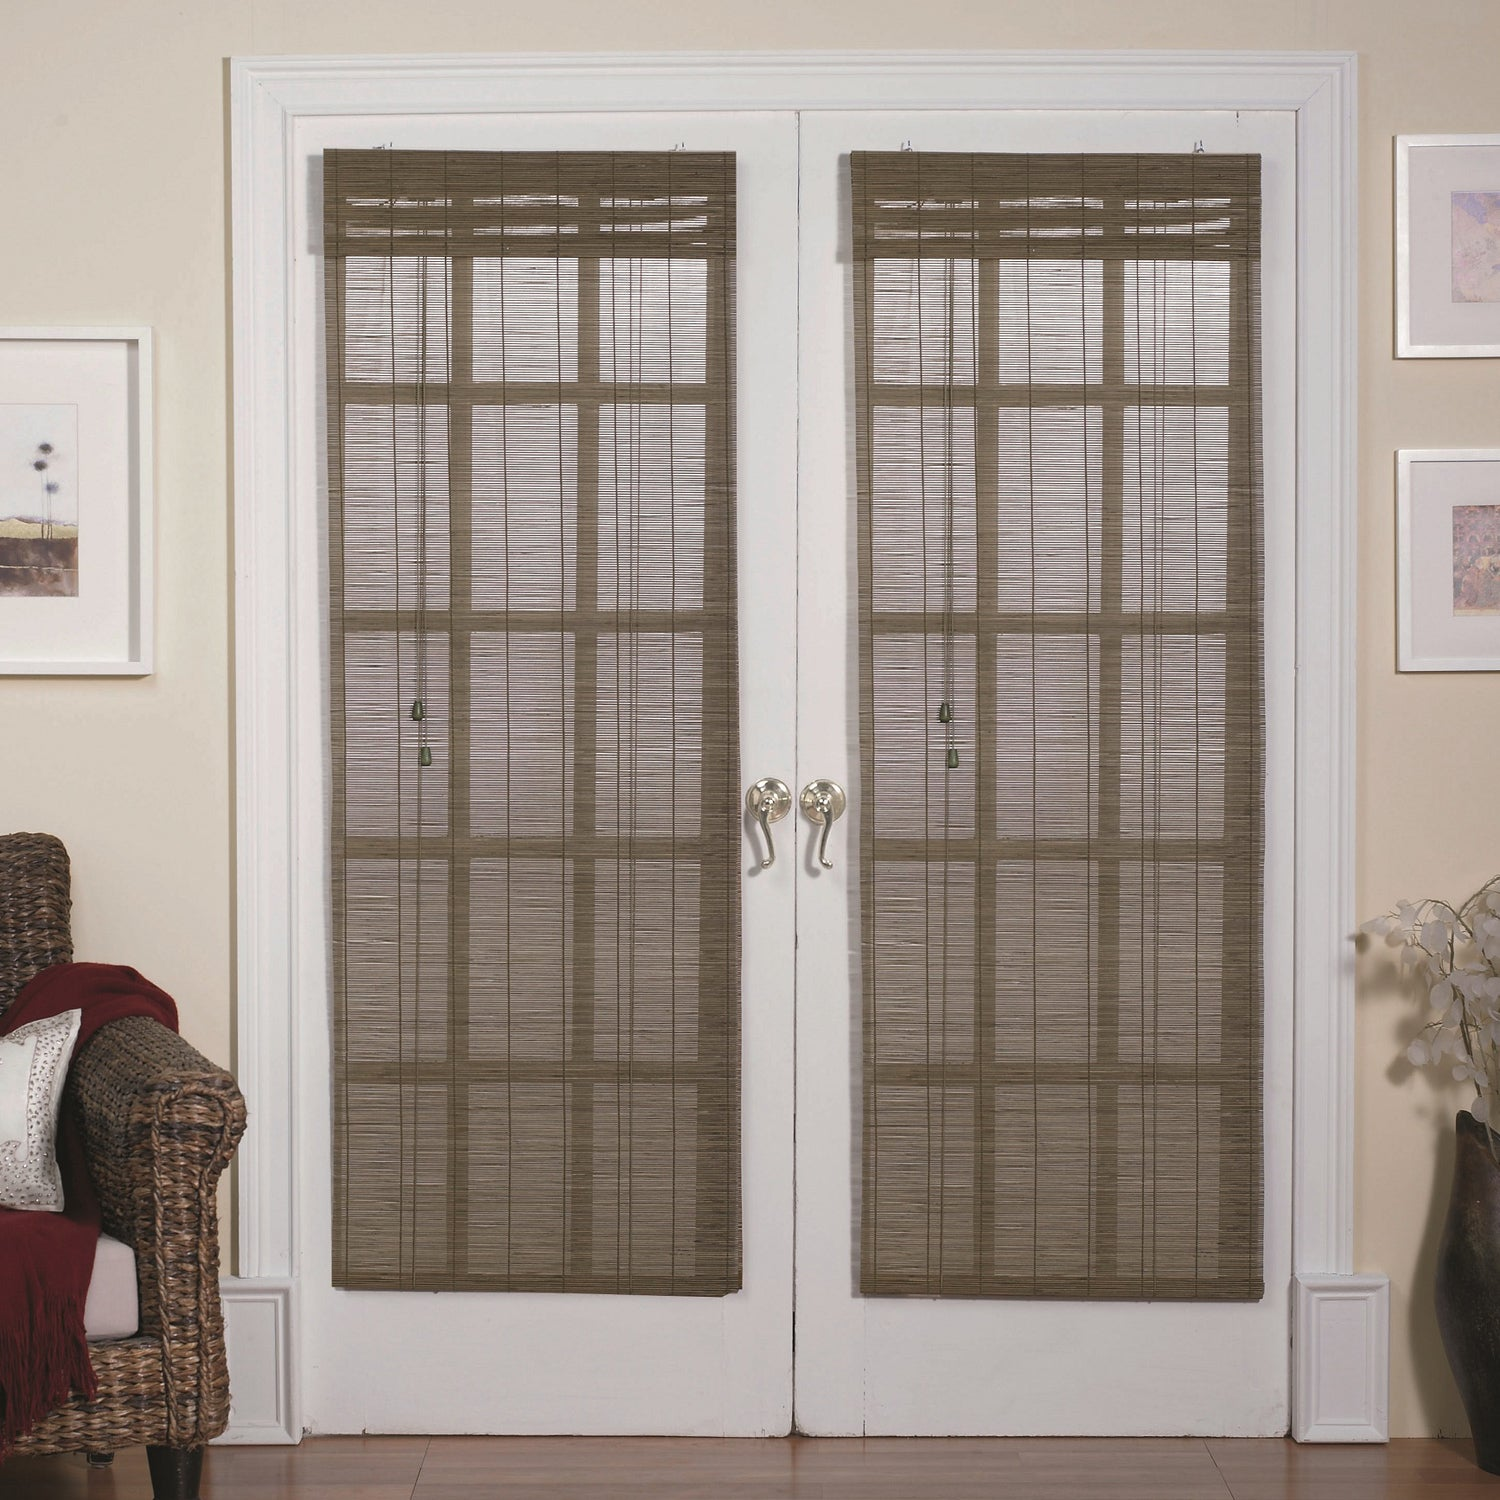 Radians French Door Bamboo Blind In Willow 24 X 72